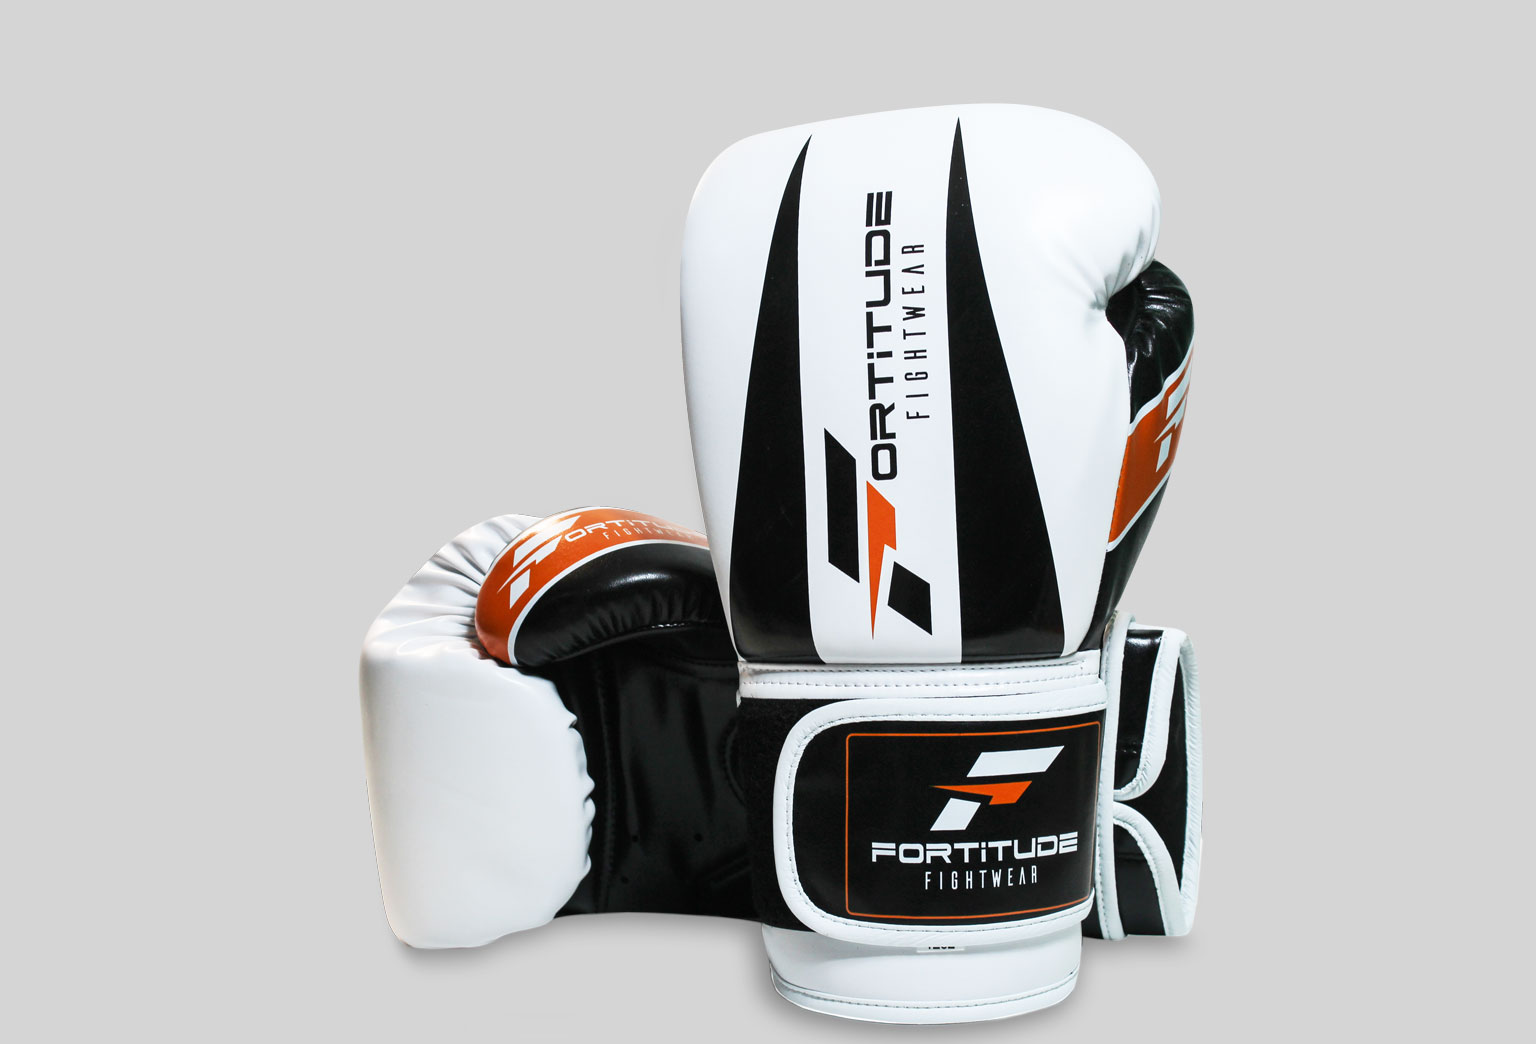 Fortitude Fightwear Boxing Gloves